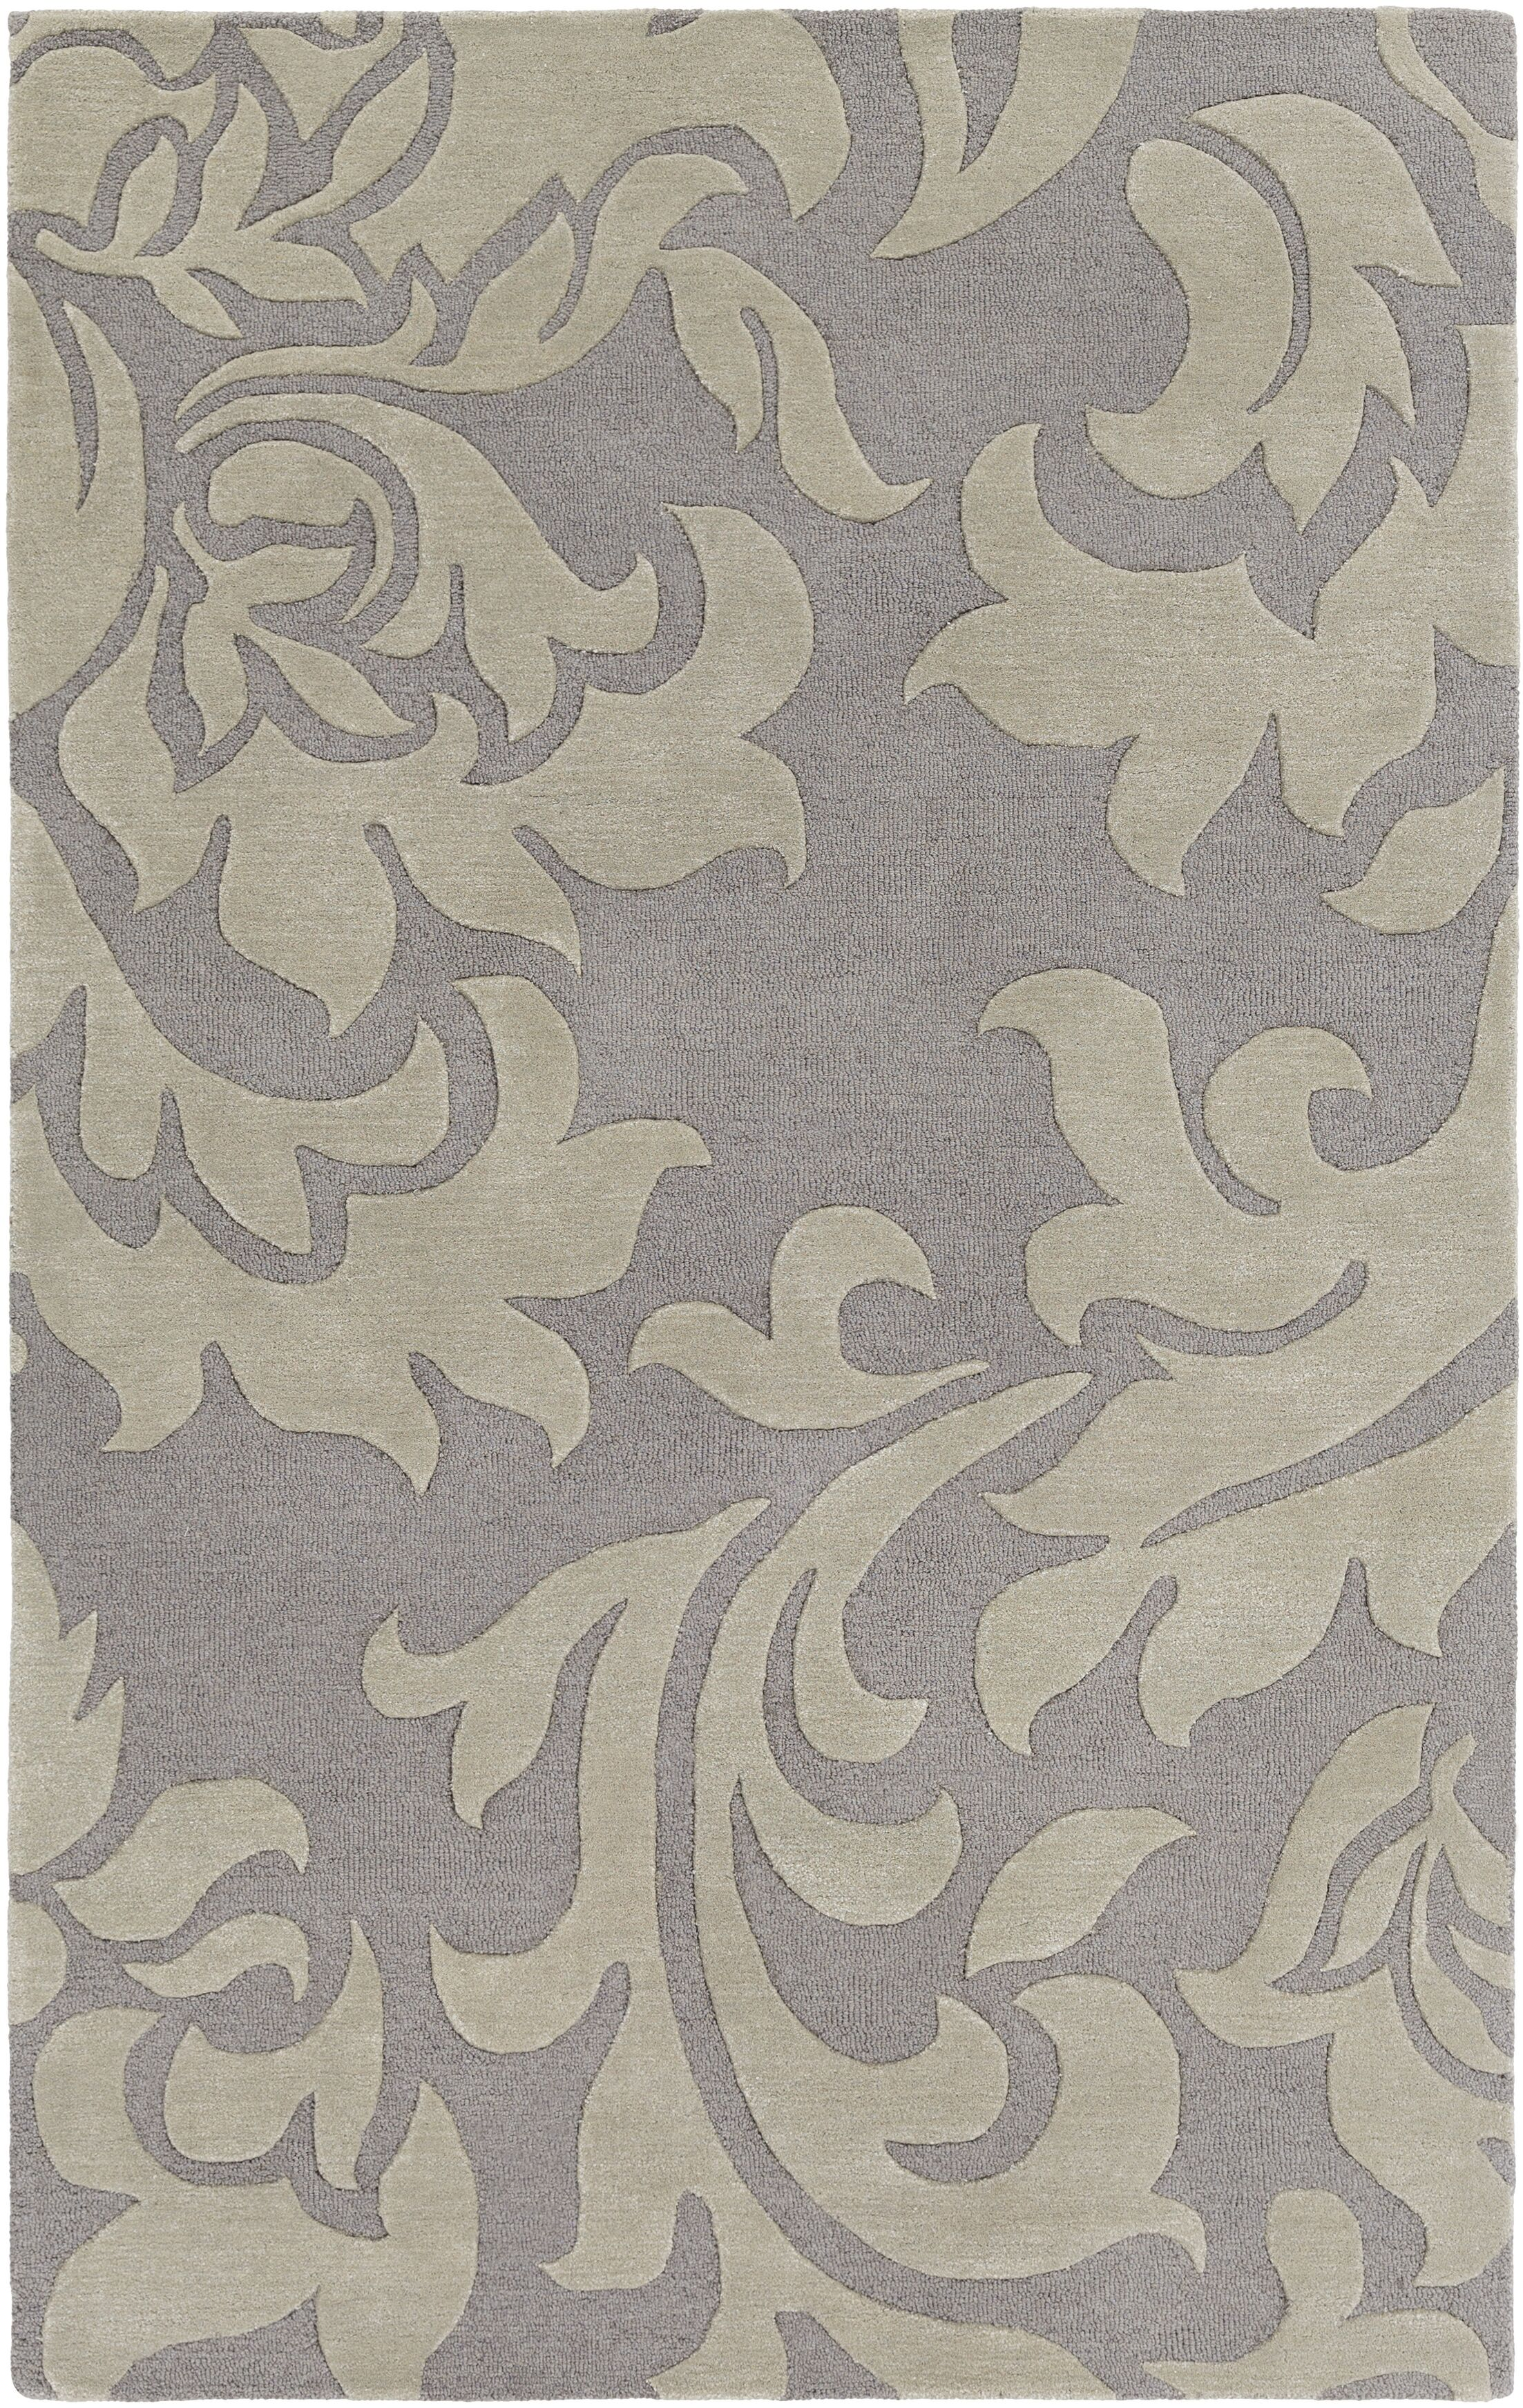 Kiesel Hand-Tufted Silver/Gray Area Rug Rug Size: Rectangle 9' x 13'